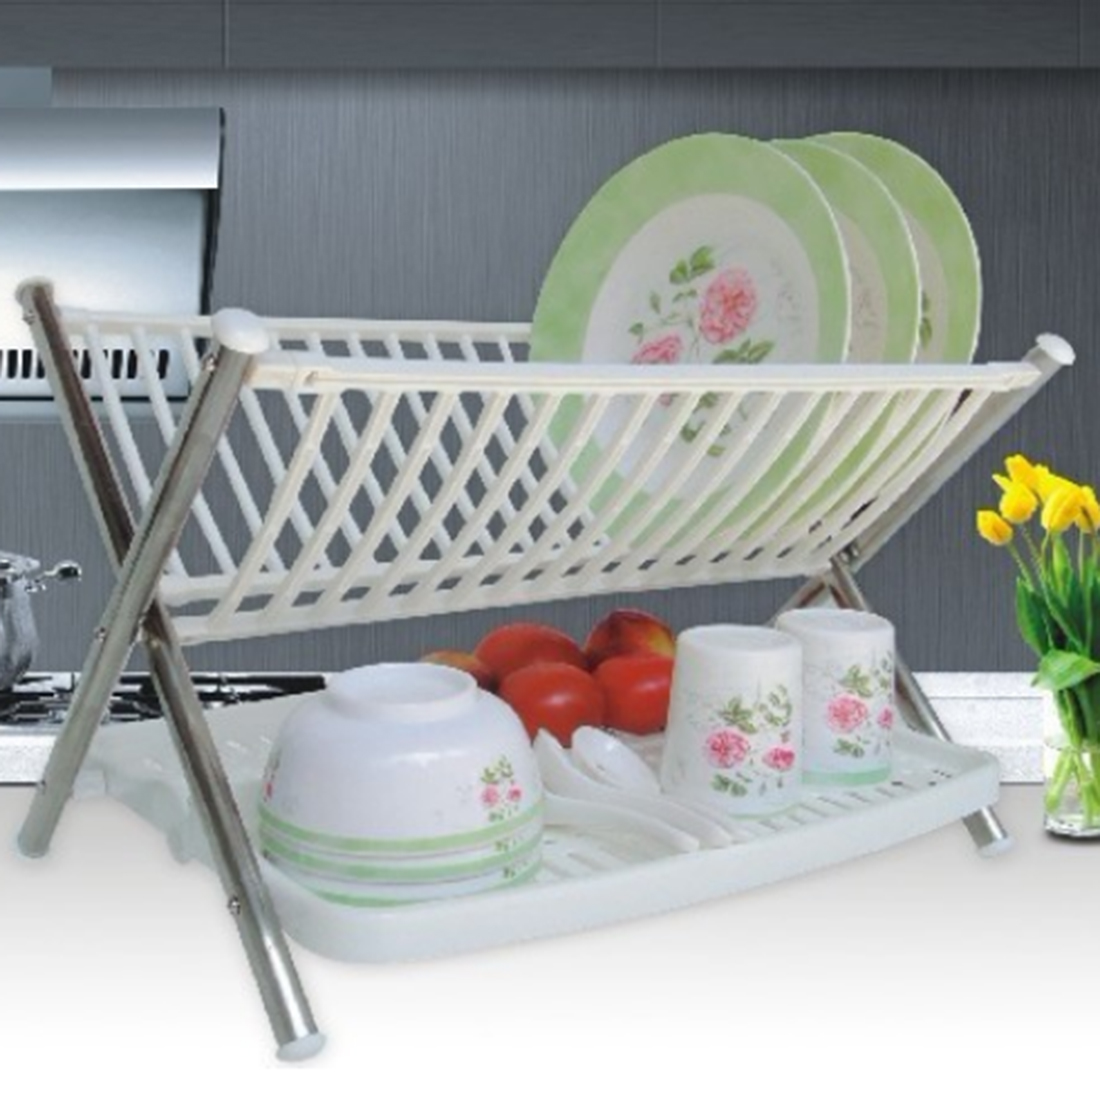 Tiers compact dish rack kitchenware dish drying rack dish drainer - Plastic Kitchen Utensil Double Layers Dish Rack Collapsible Compact Dish Drying Drainer For The Kitchen